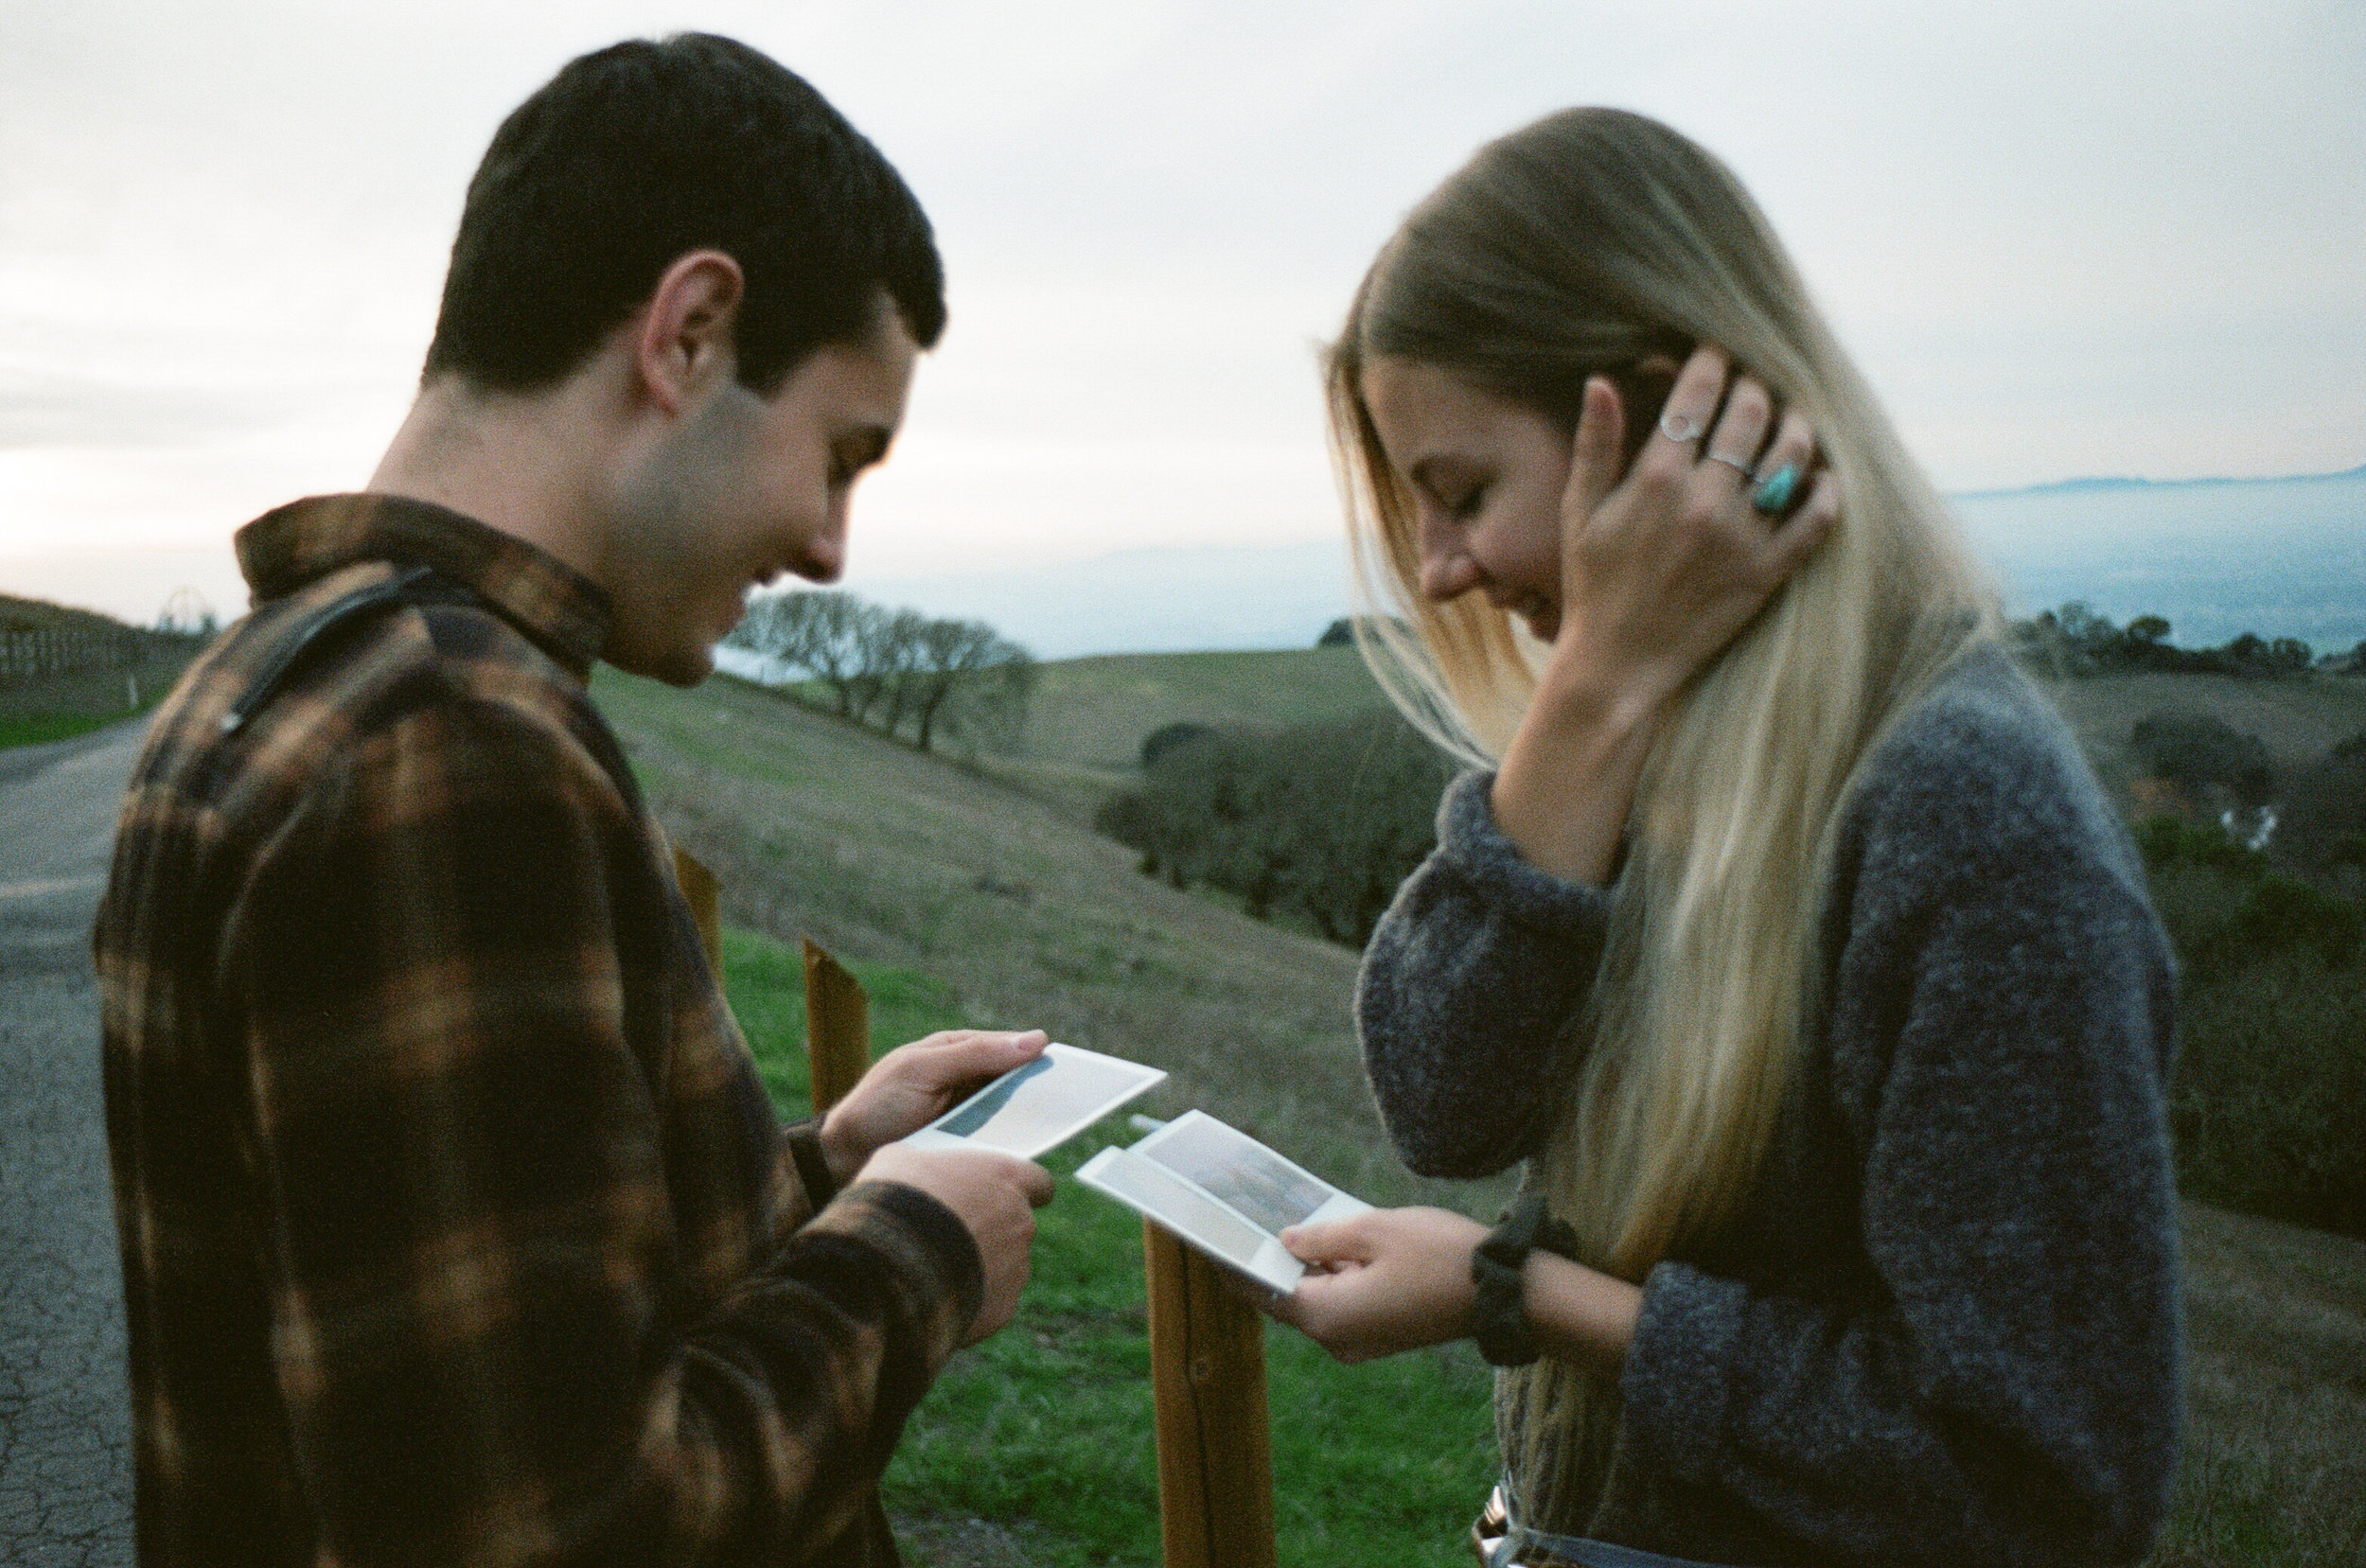 hannah&cole-california-film-jan2019-peytoncurry-000098780031.jpg